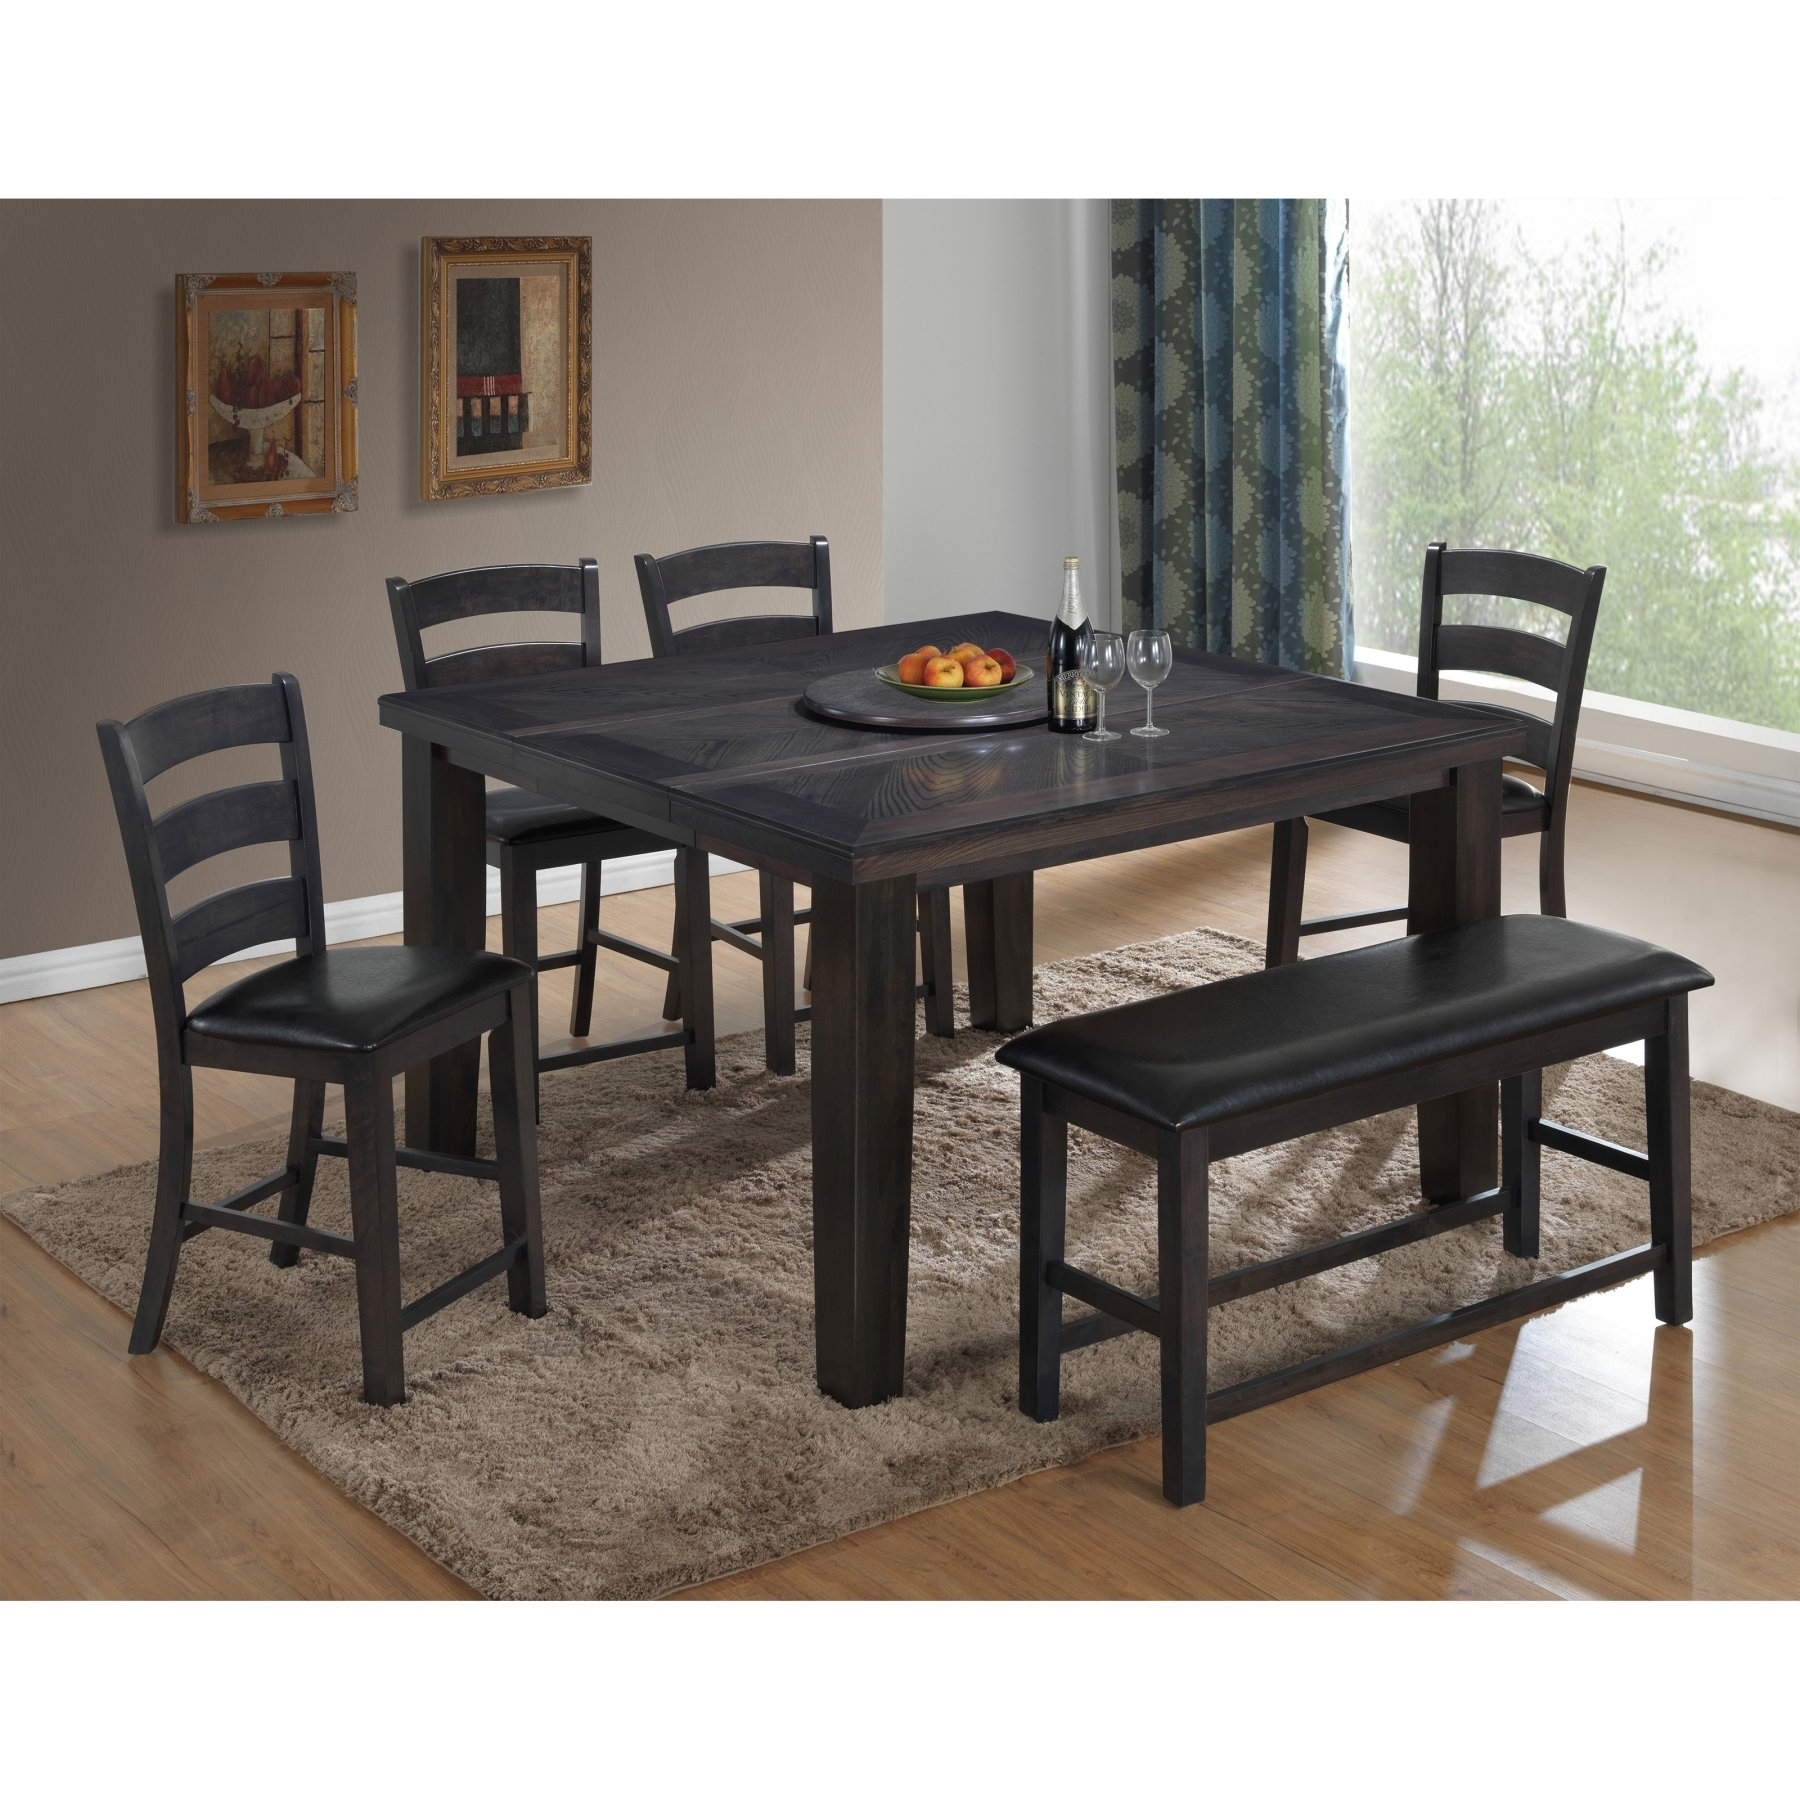 Best Master Furniture Carol Rectangular 6 Piece Counter Height Within Well Liked Craftsman 7 Piece Rectangle Extension Dining Sets With Side Chairs (View 4 of 25)